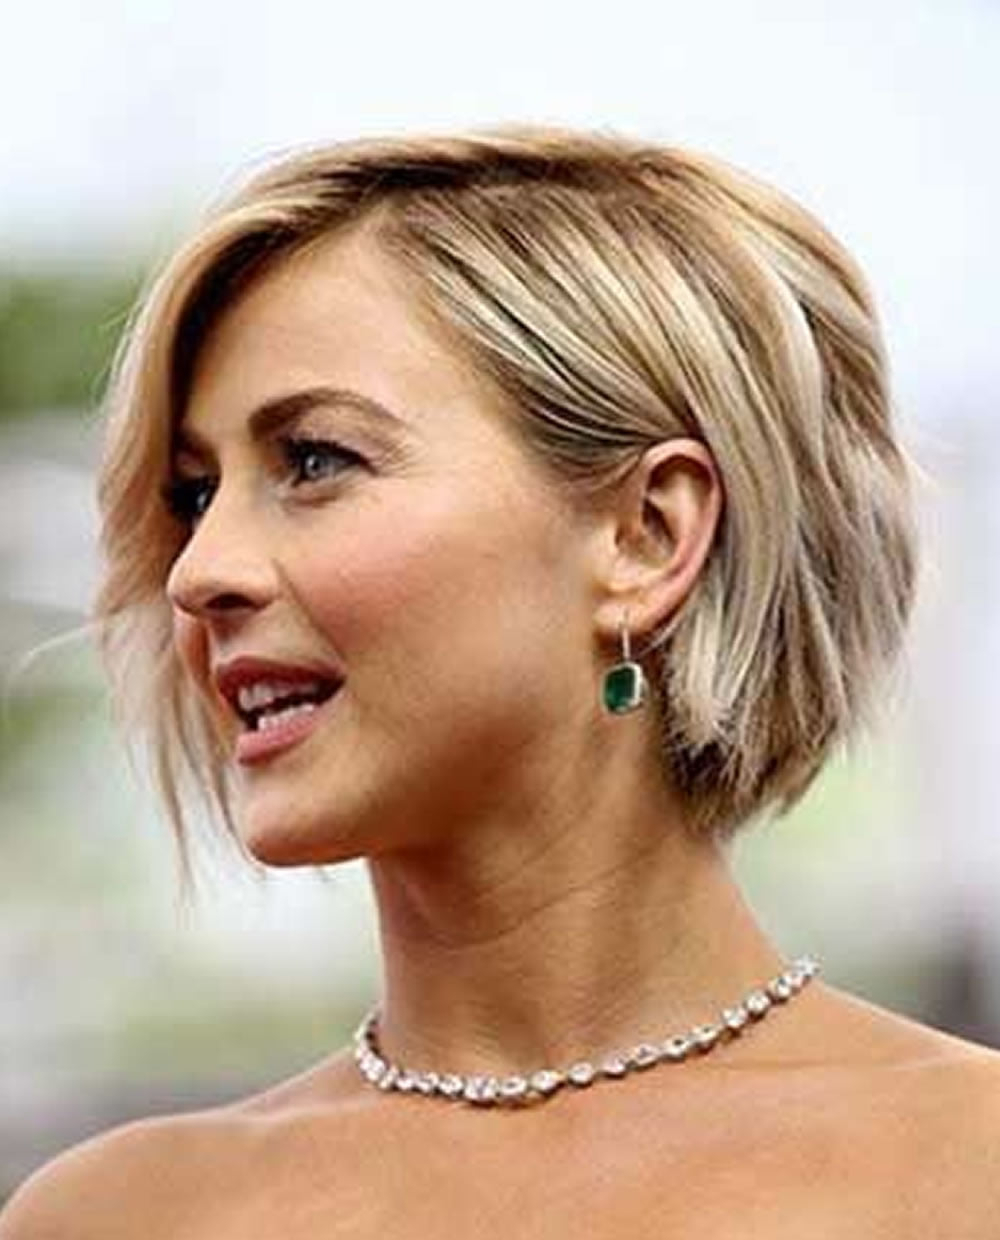 31 Chic Short Haircut Ideas 2018 & Pixie & Bob Hair Within Balayage For Short Stacked Bob Hairstyles (View 17 of 20)